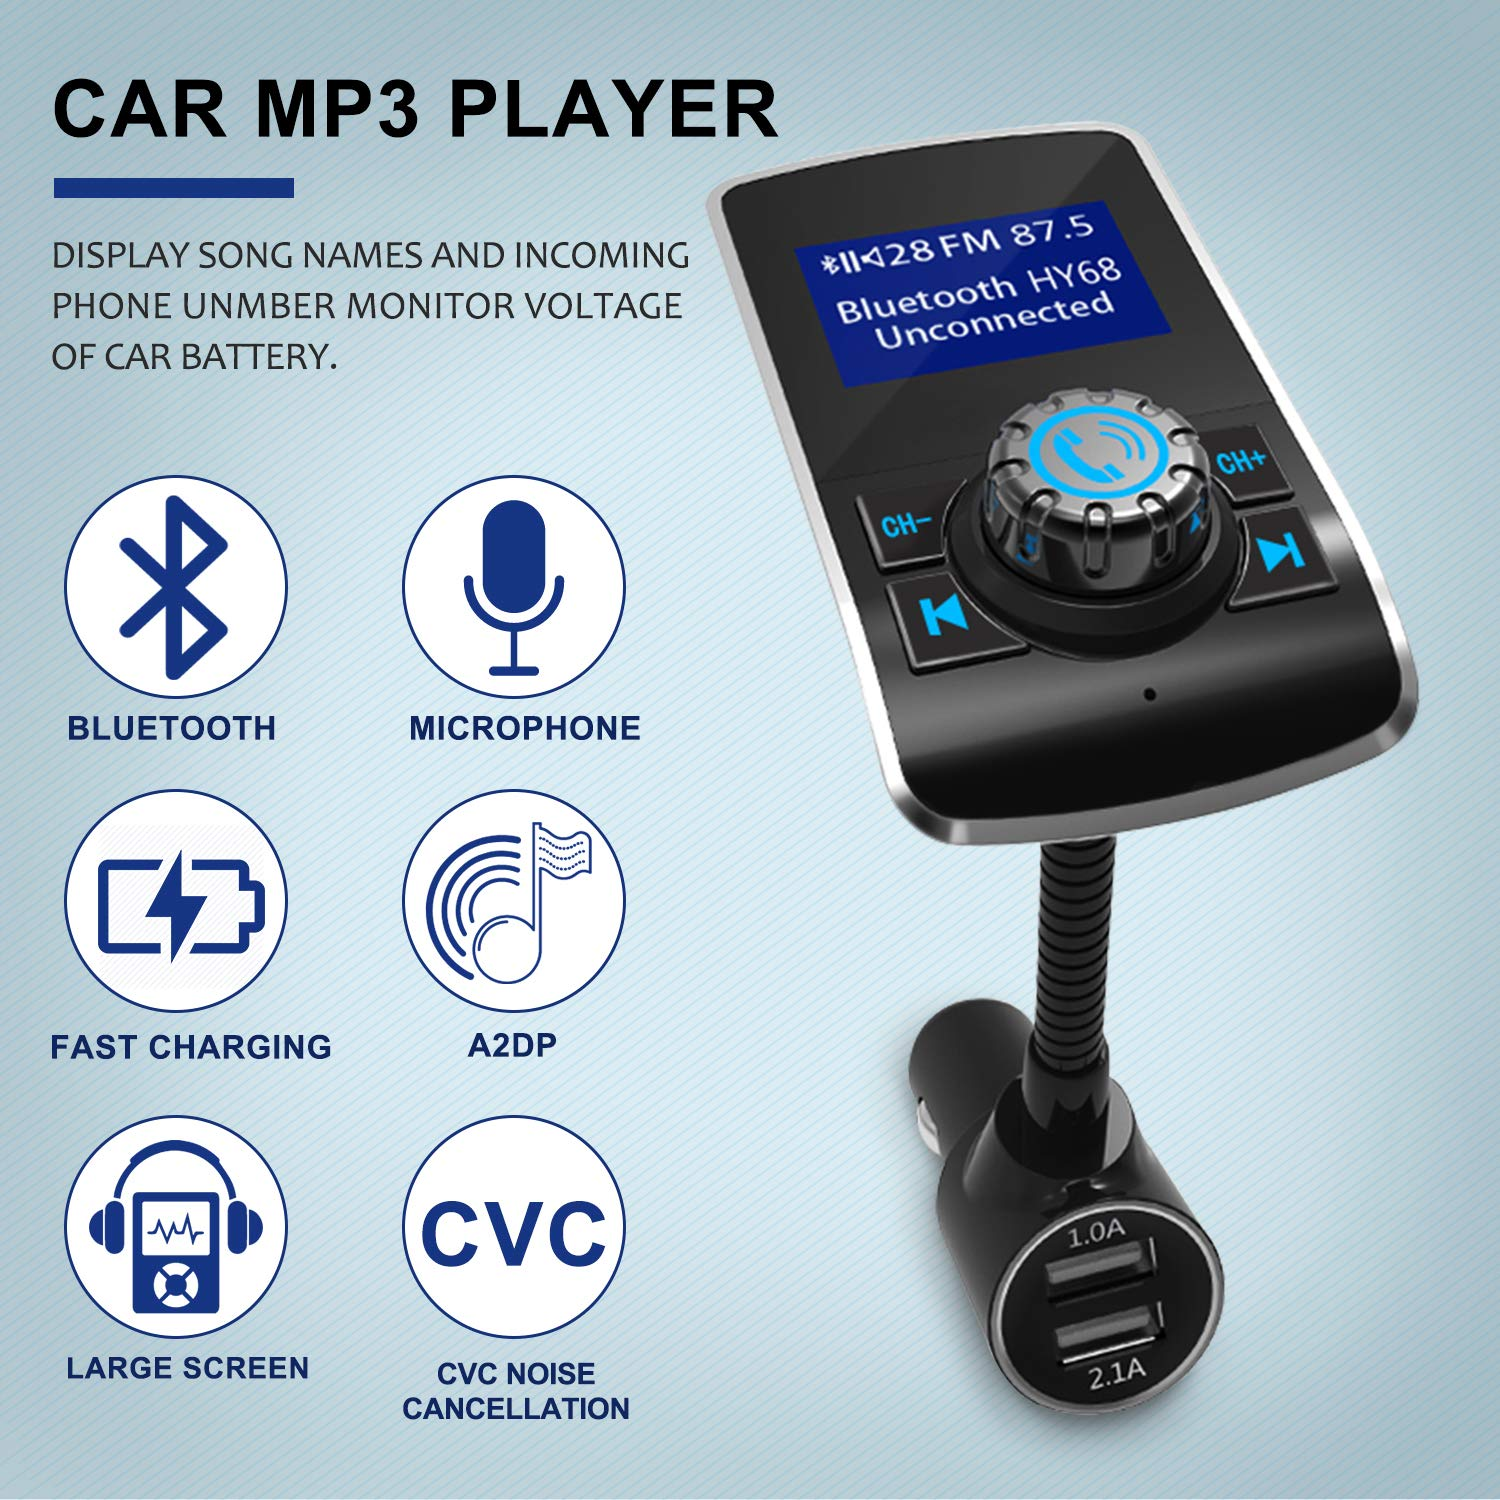 sgin fm transmitter bluetooth car mp3 player radio amazon co uk rh amazon co uk how to play music from your phone in a car without aux